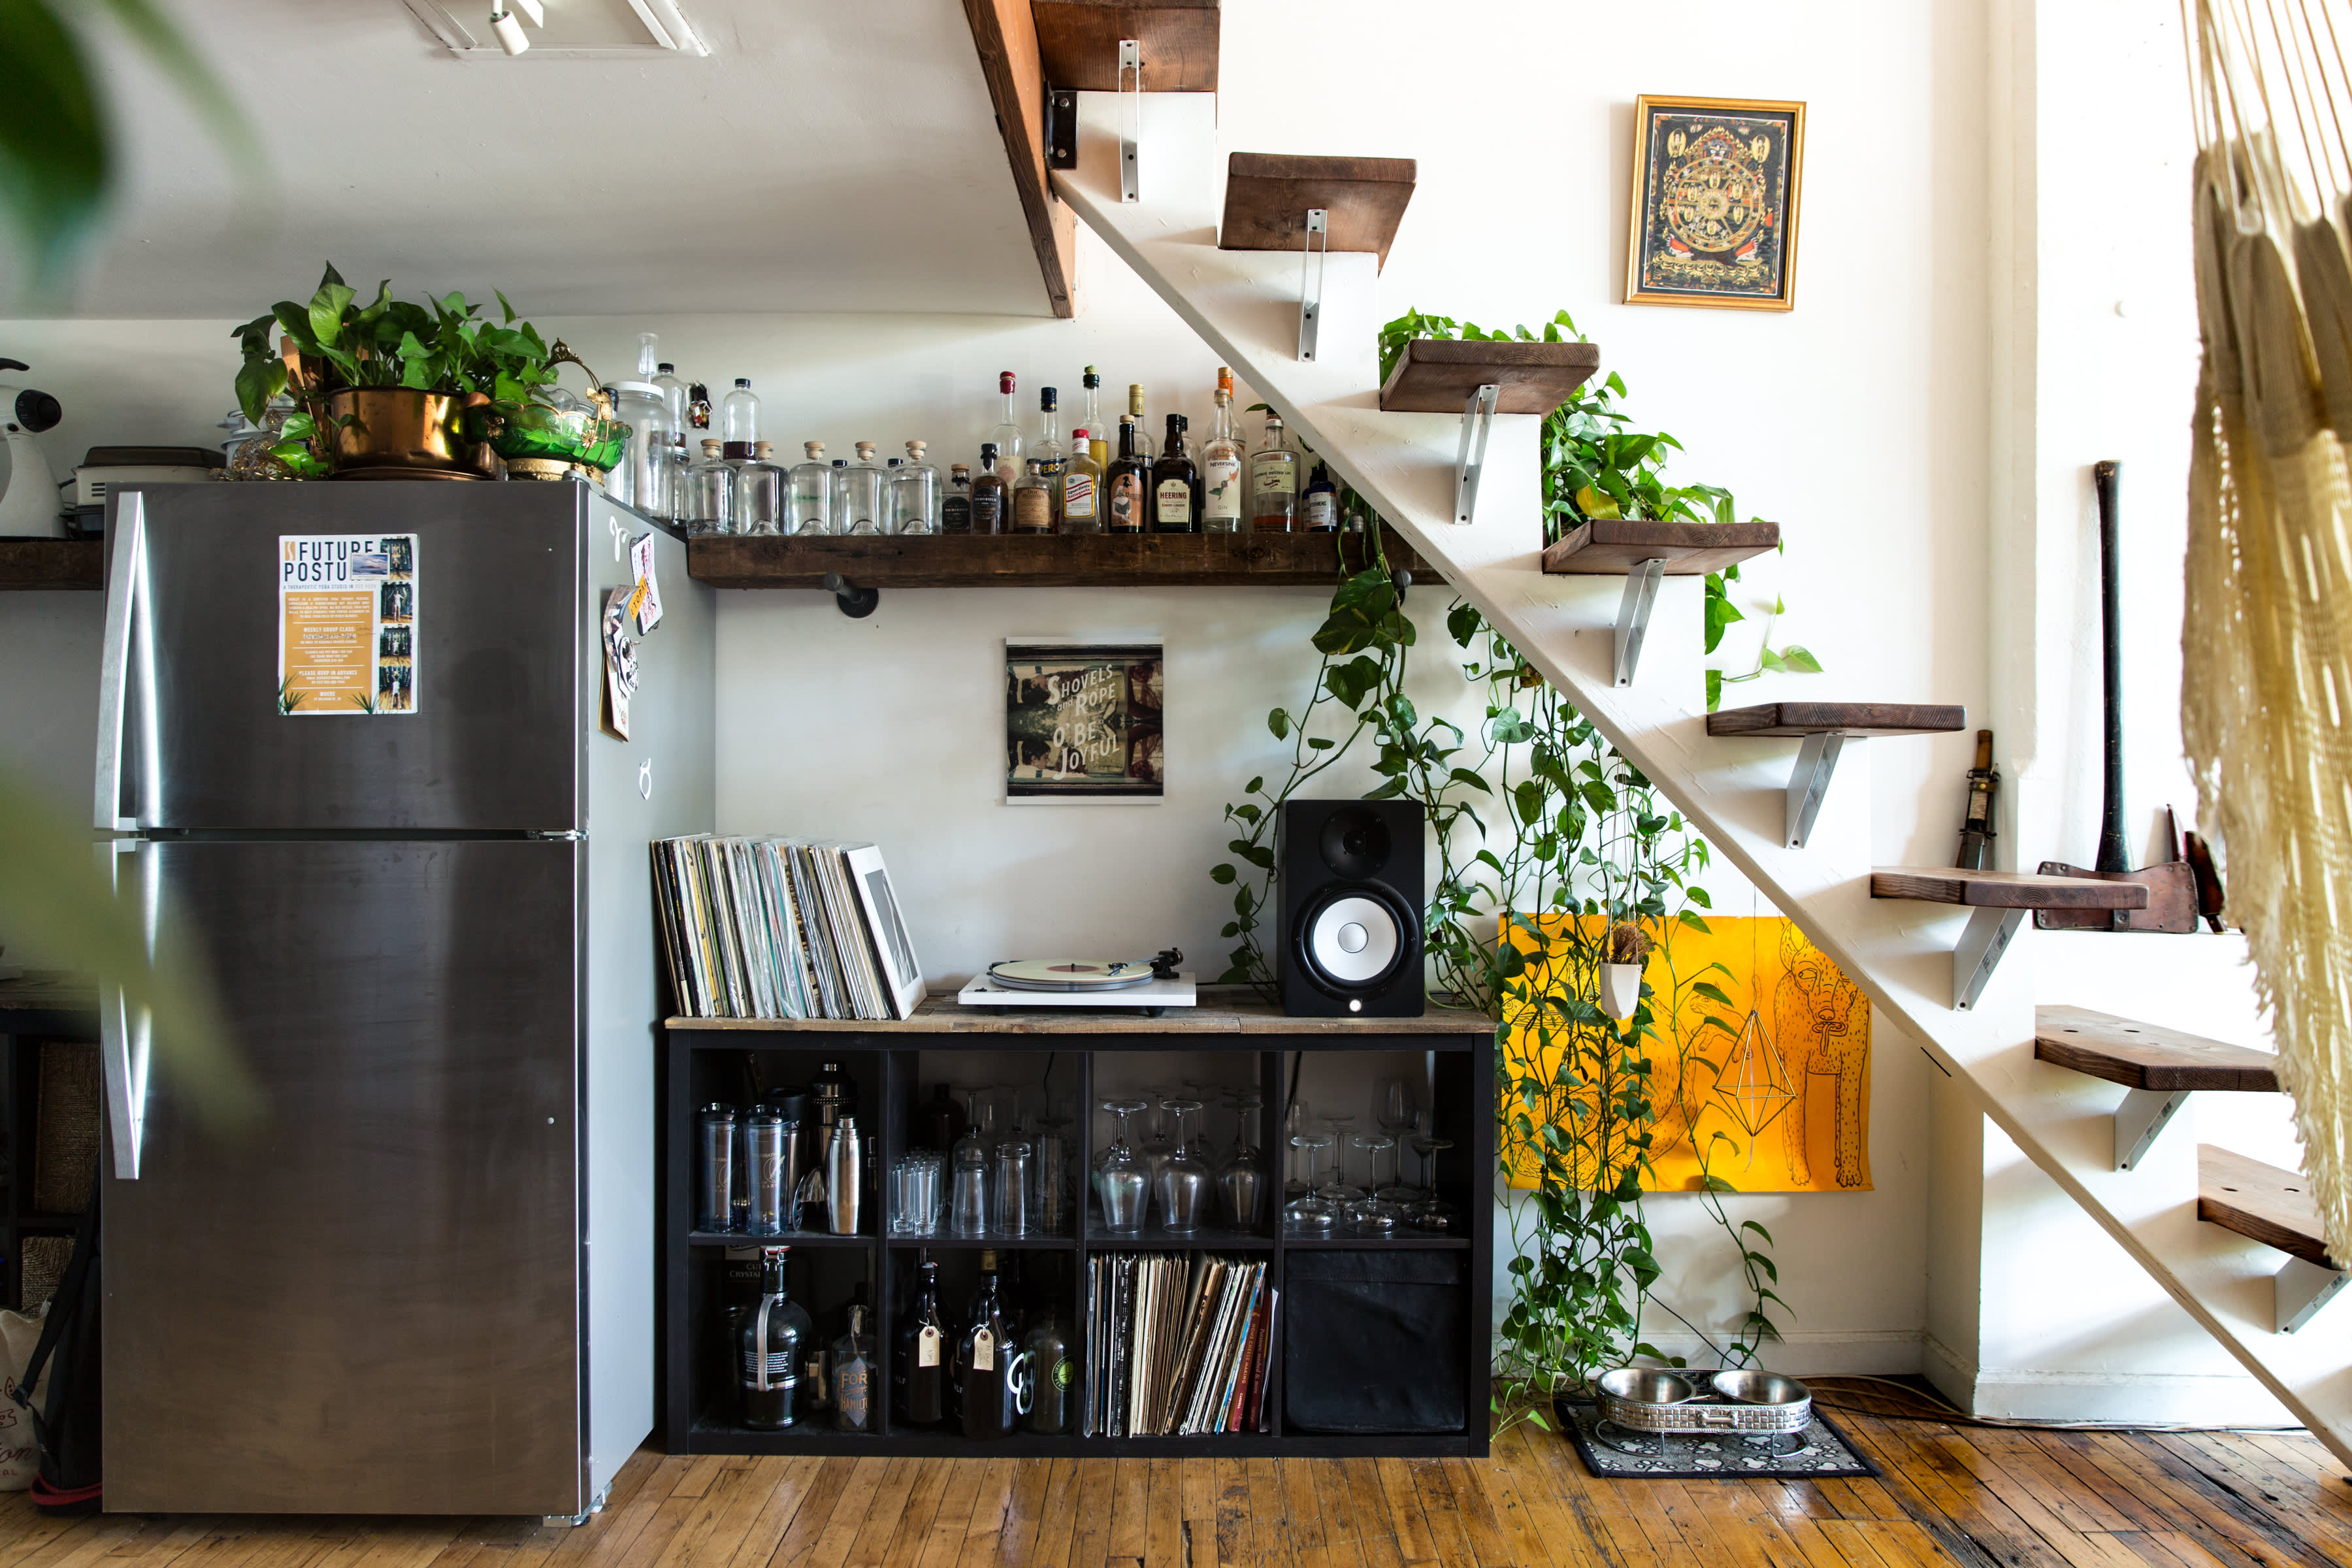 Brooklyn Home Tour: A Plant-Filled Red Hook Loft   Apartment